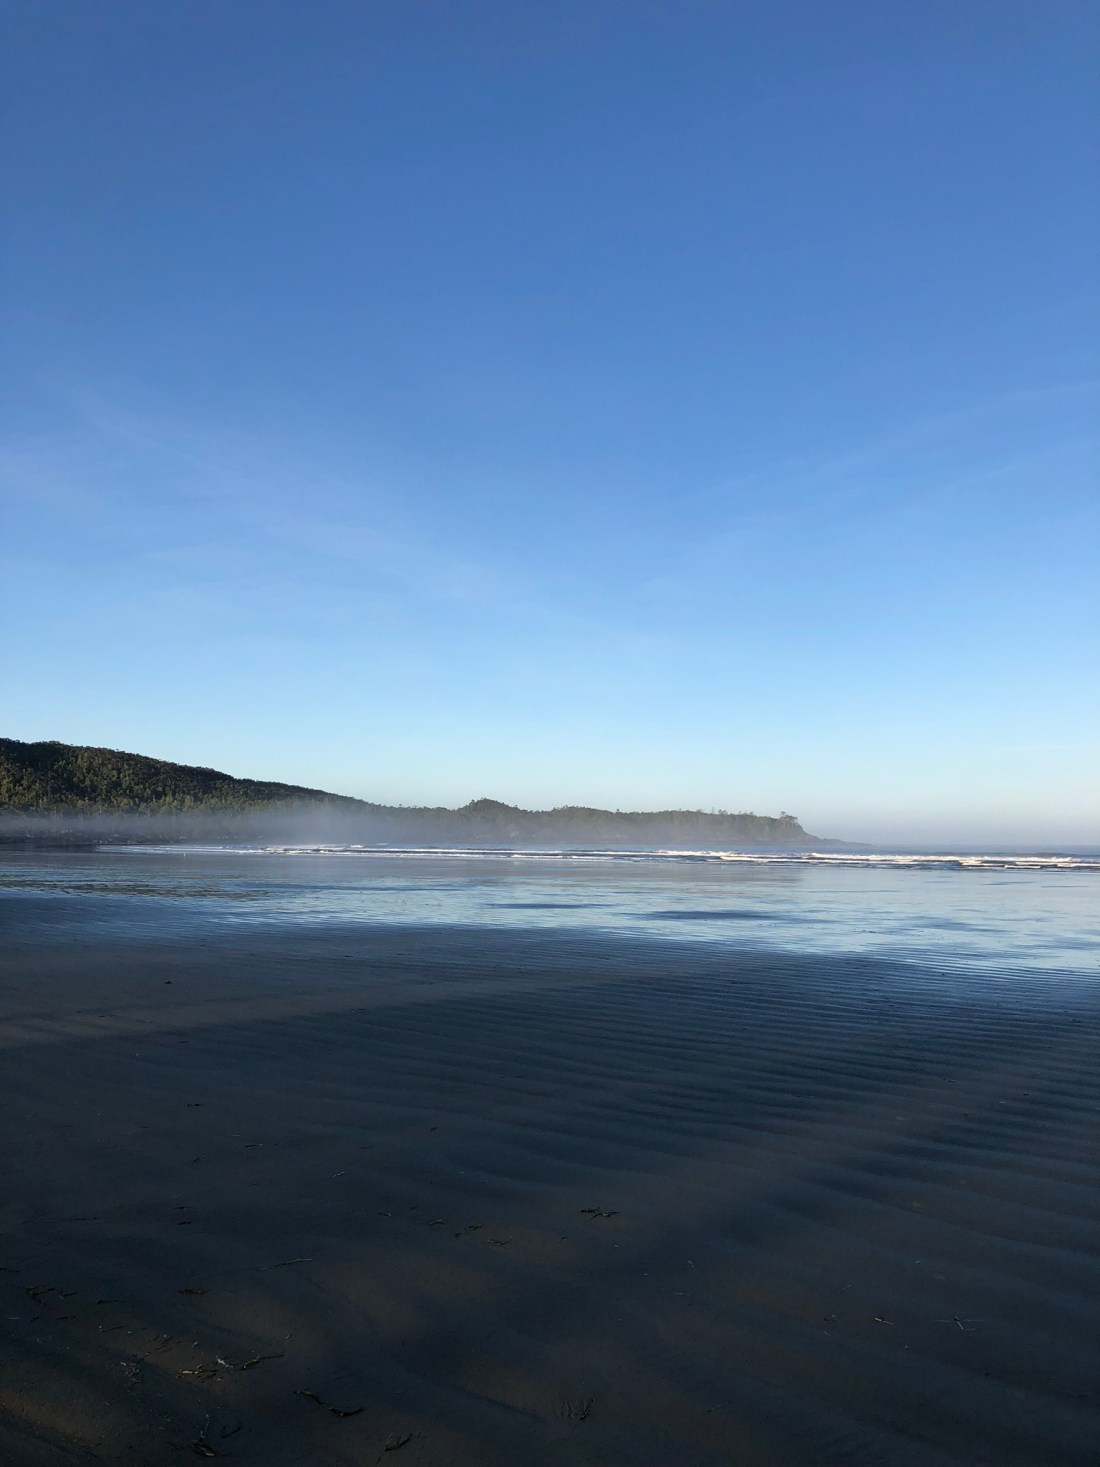 Morning surf in Tofino, Vancouver Island